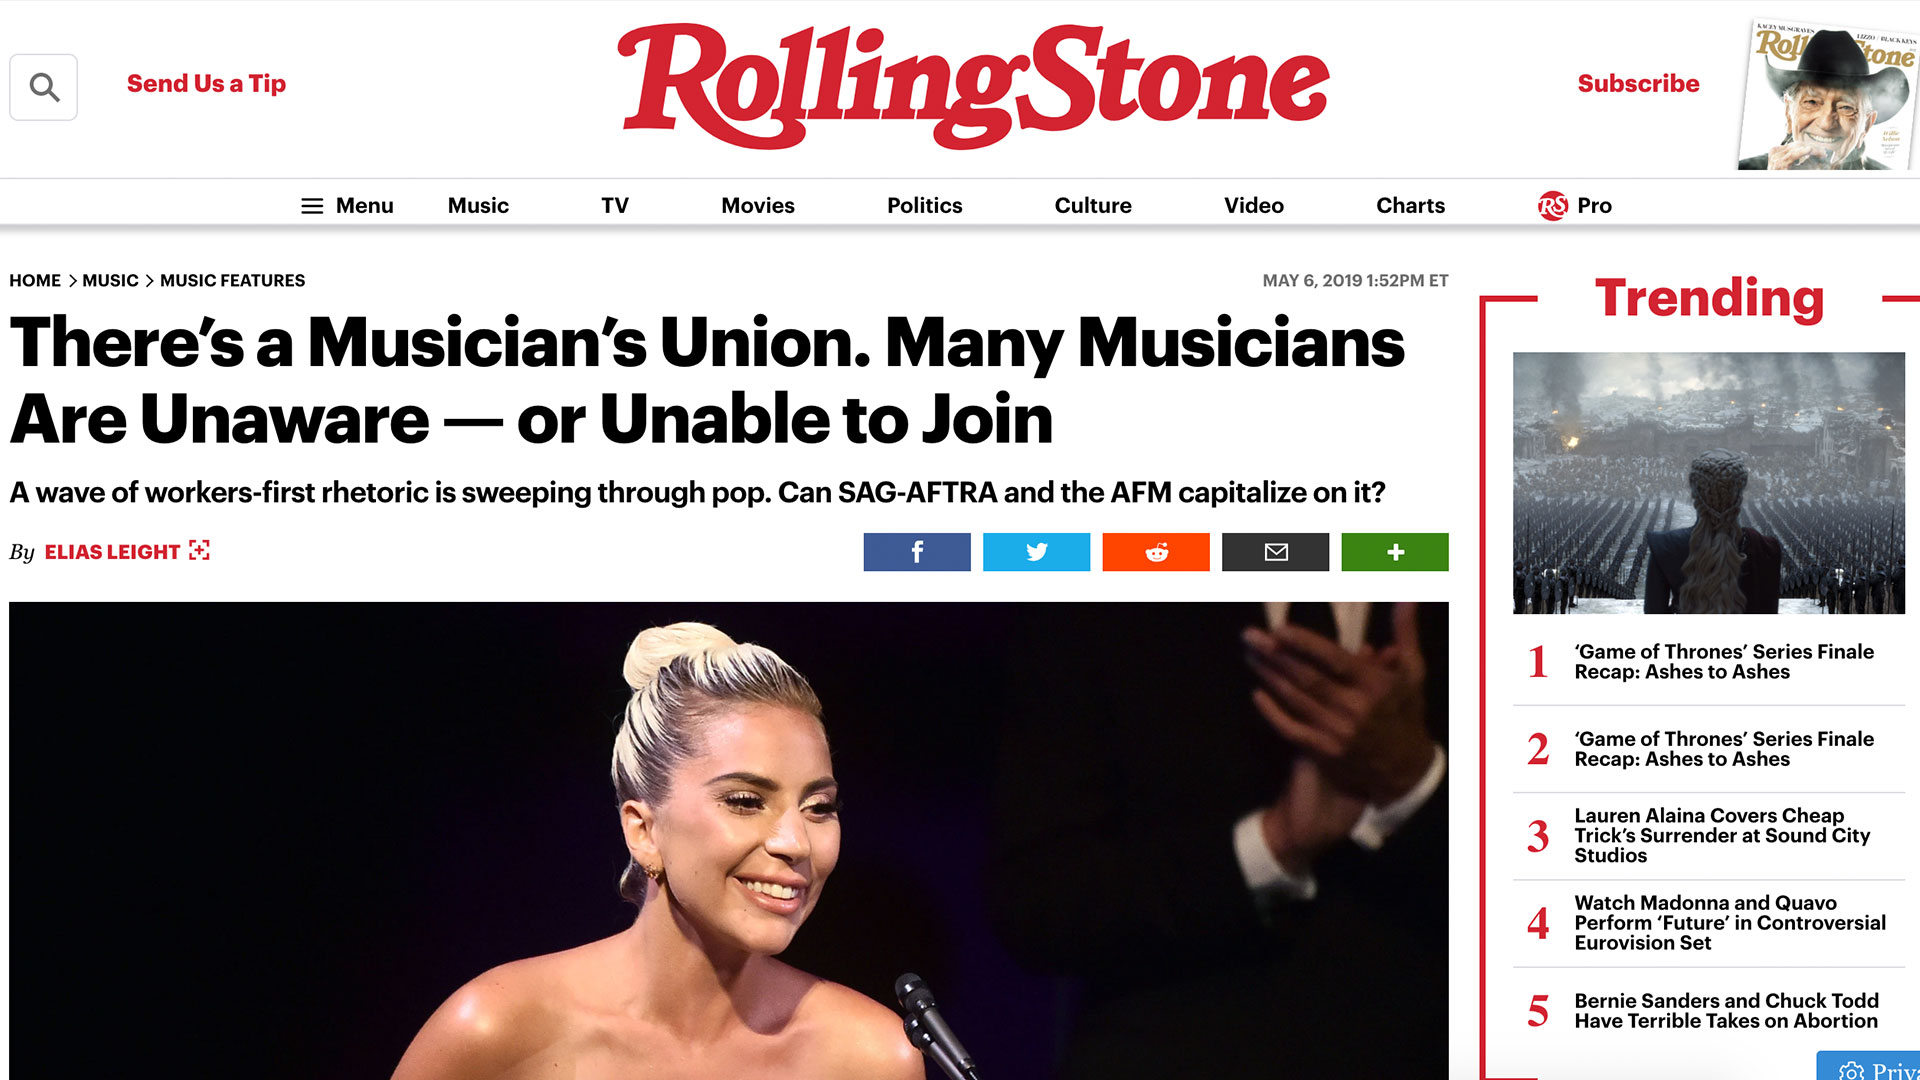 Fairness Rocks News There's a Musician's Union. Many Musicians Are Unaware — or Unable to Join